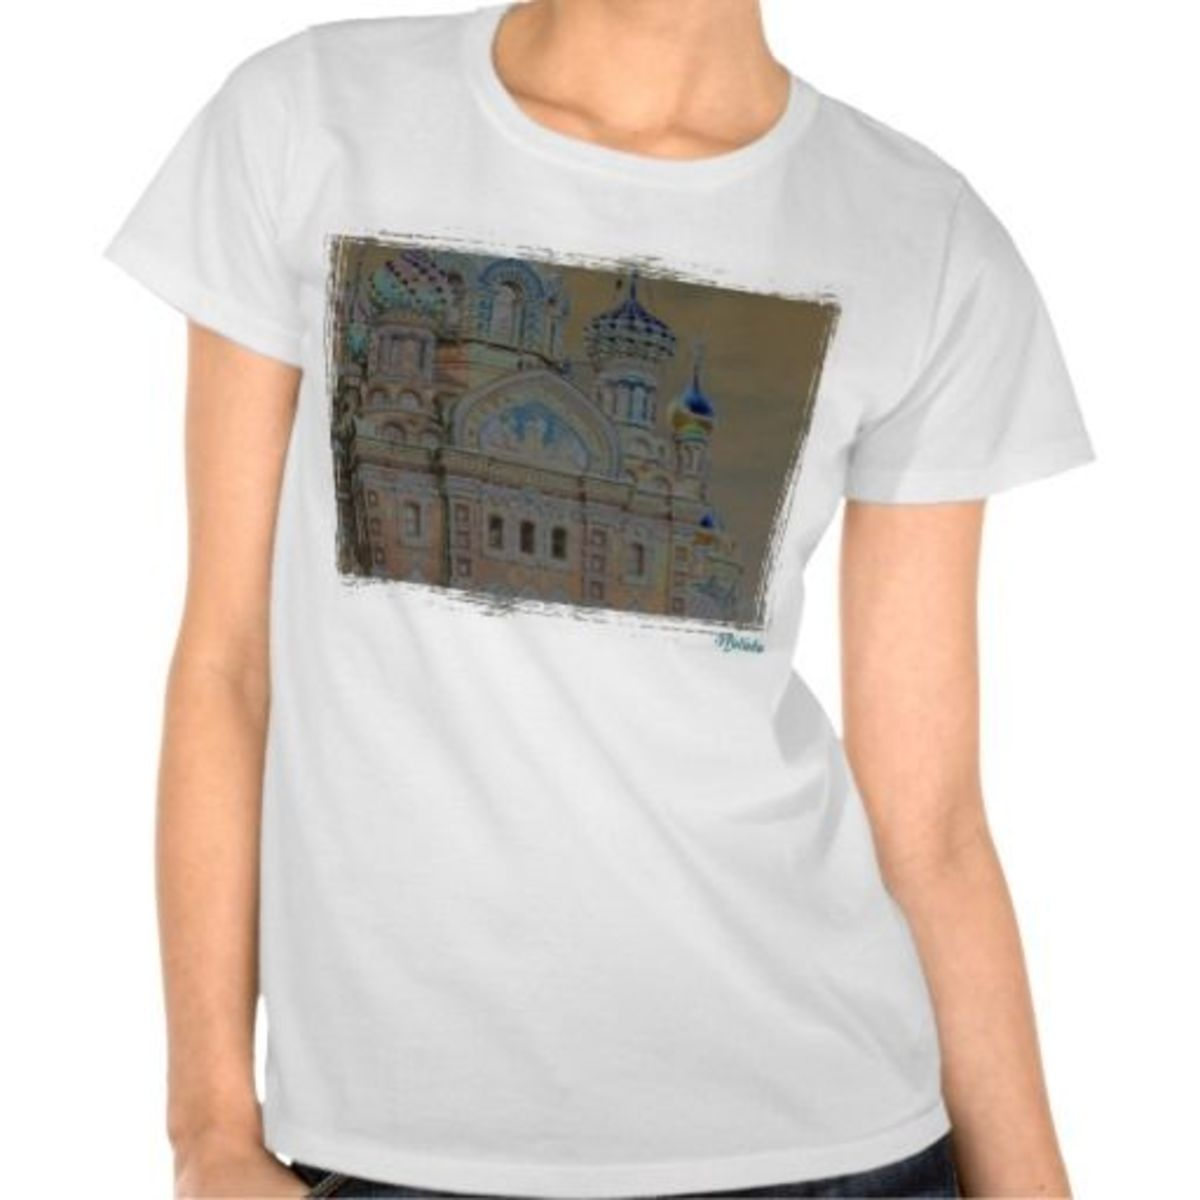 St. Petersburg Russia T-Shirt